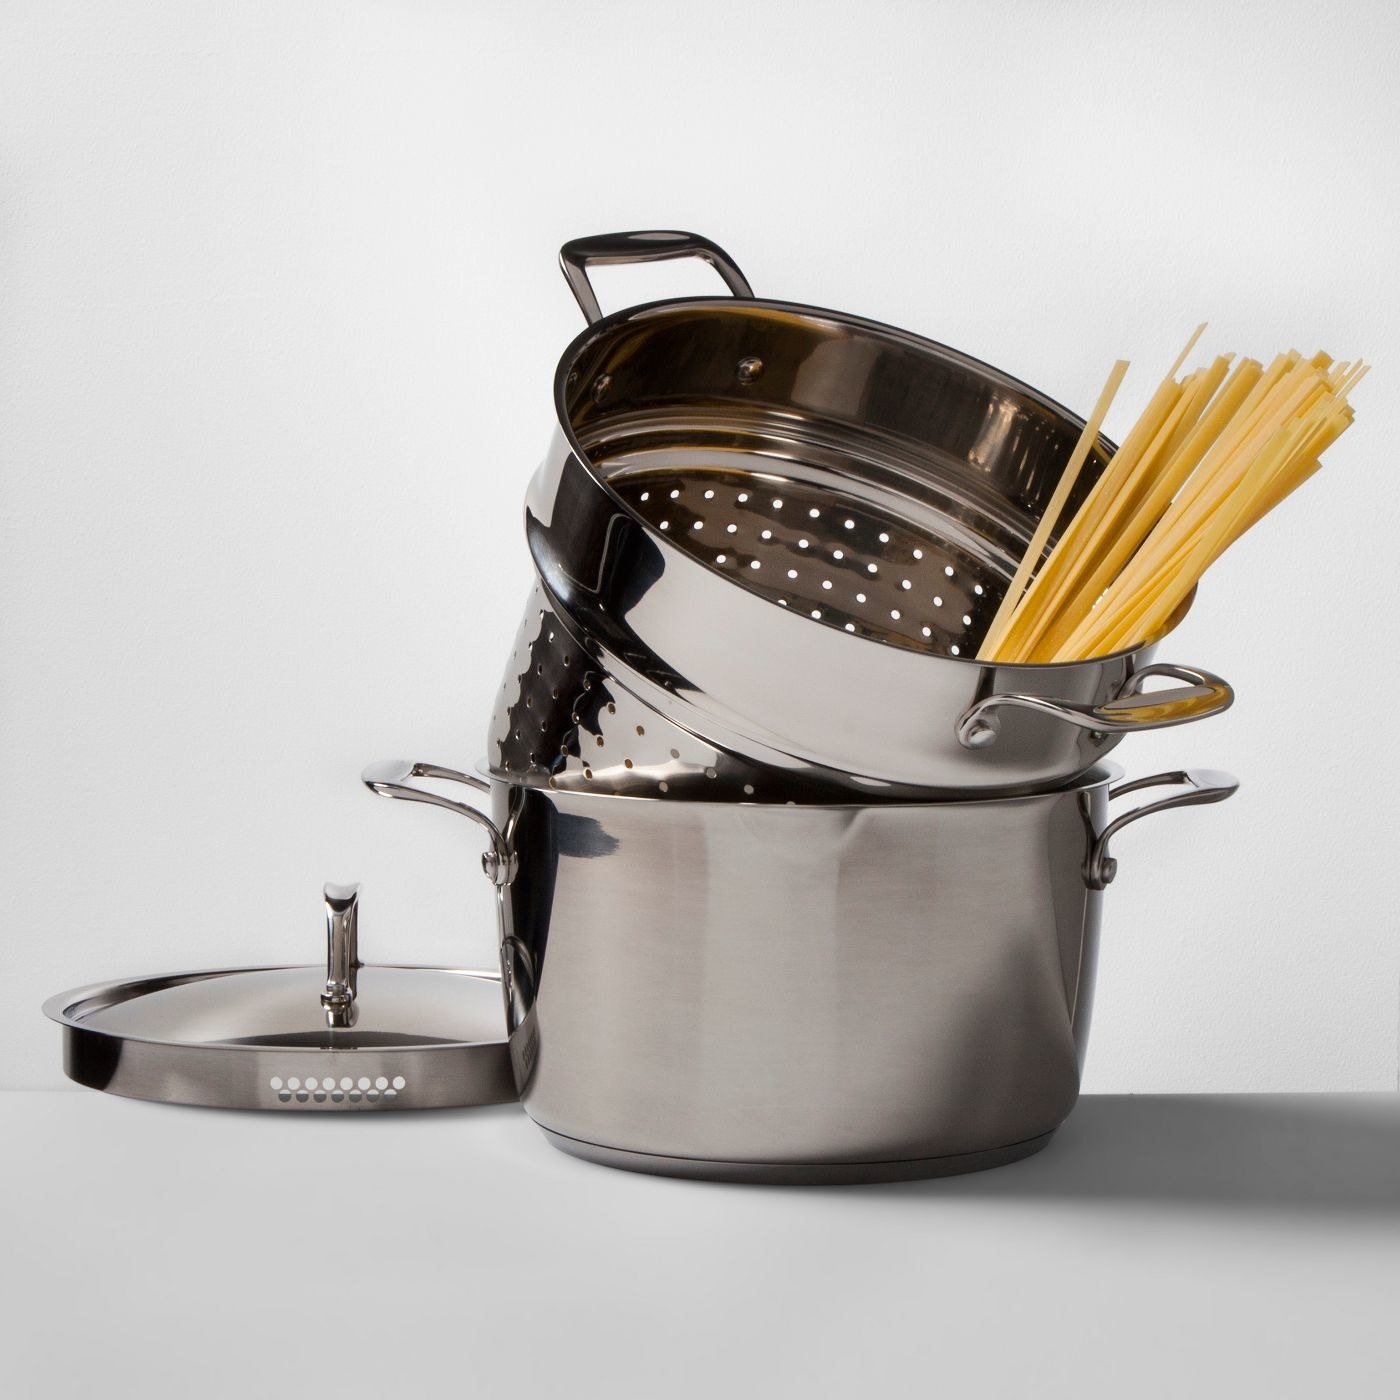 the stainless steel pot